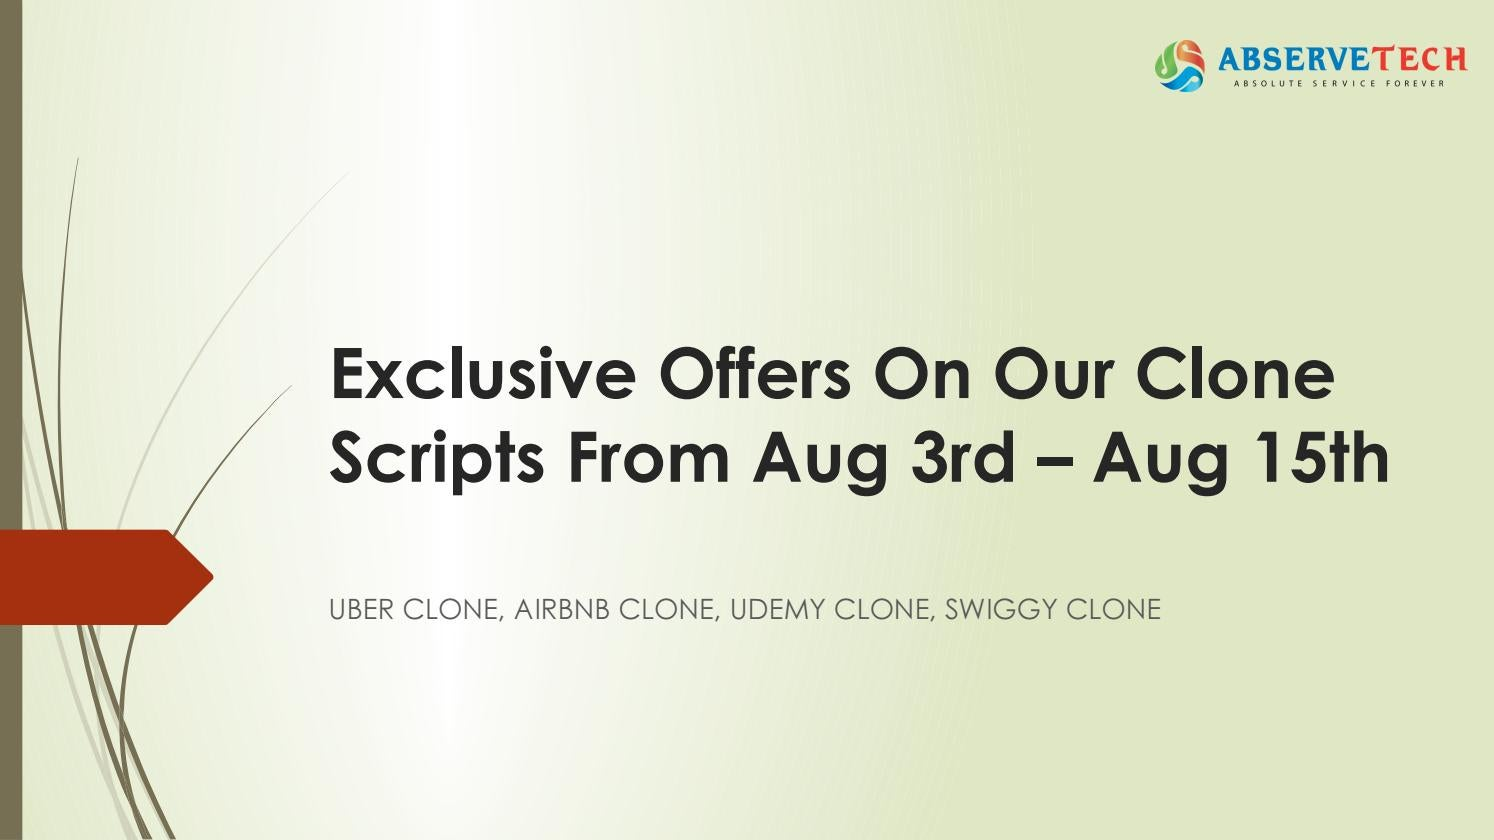 Abservetech Exclusive offers on our Clone Scripts from Aug 3rd - Aug